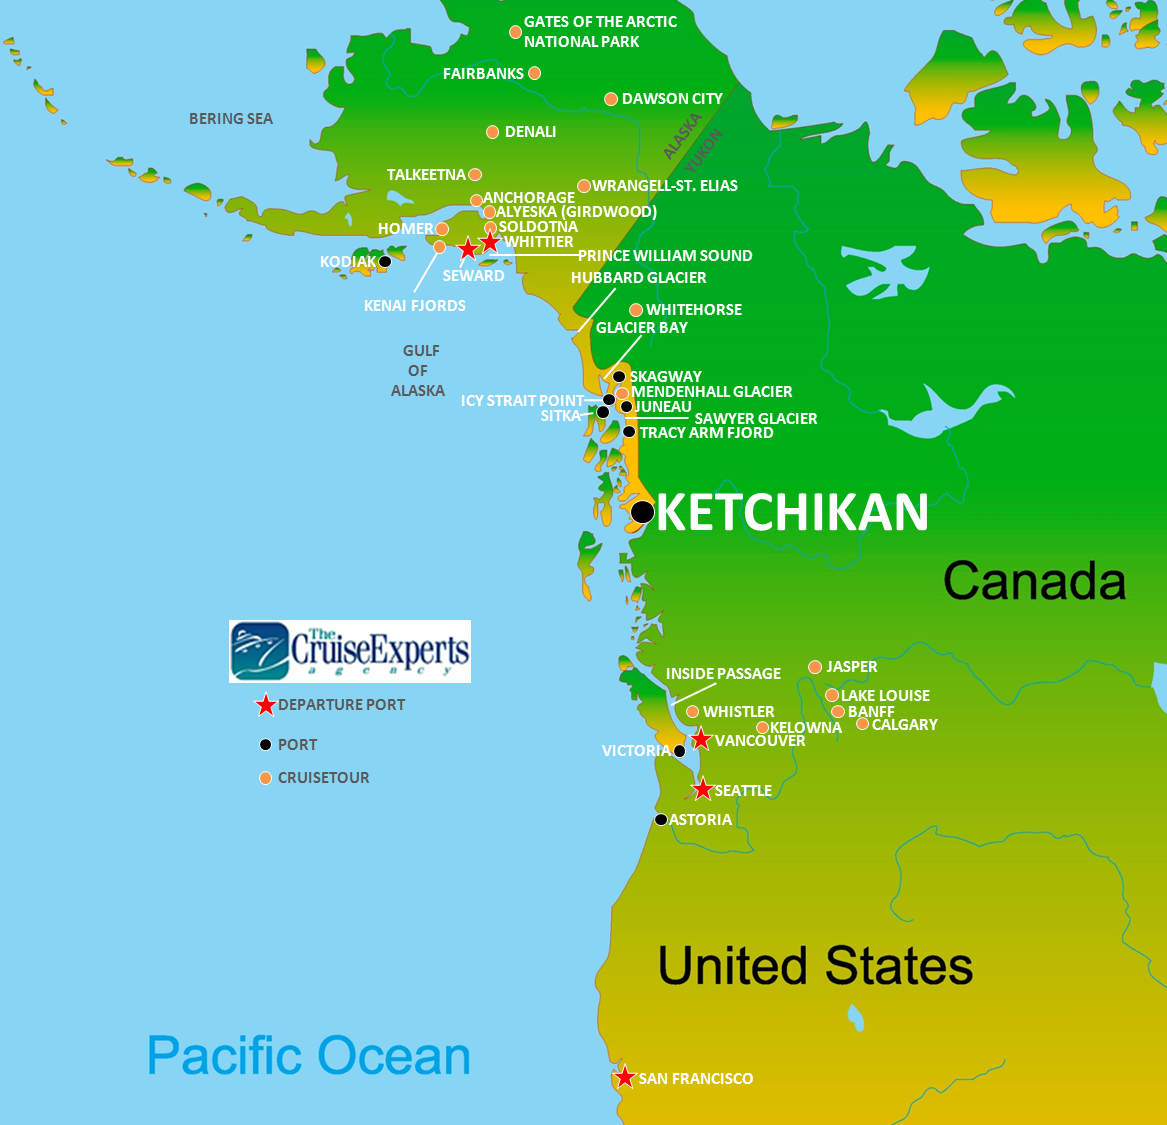 Ketchikan map - CruiseExperts.com Blog on